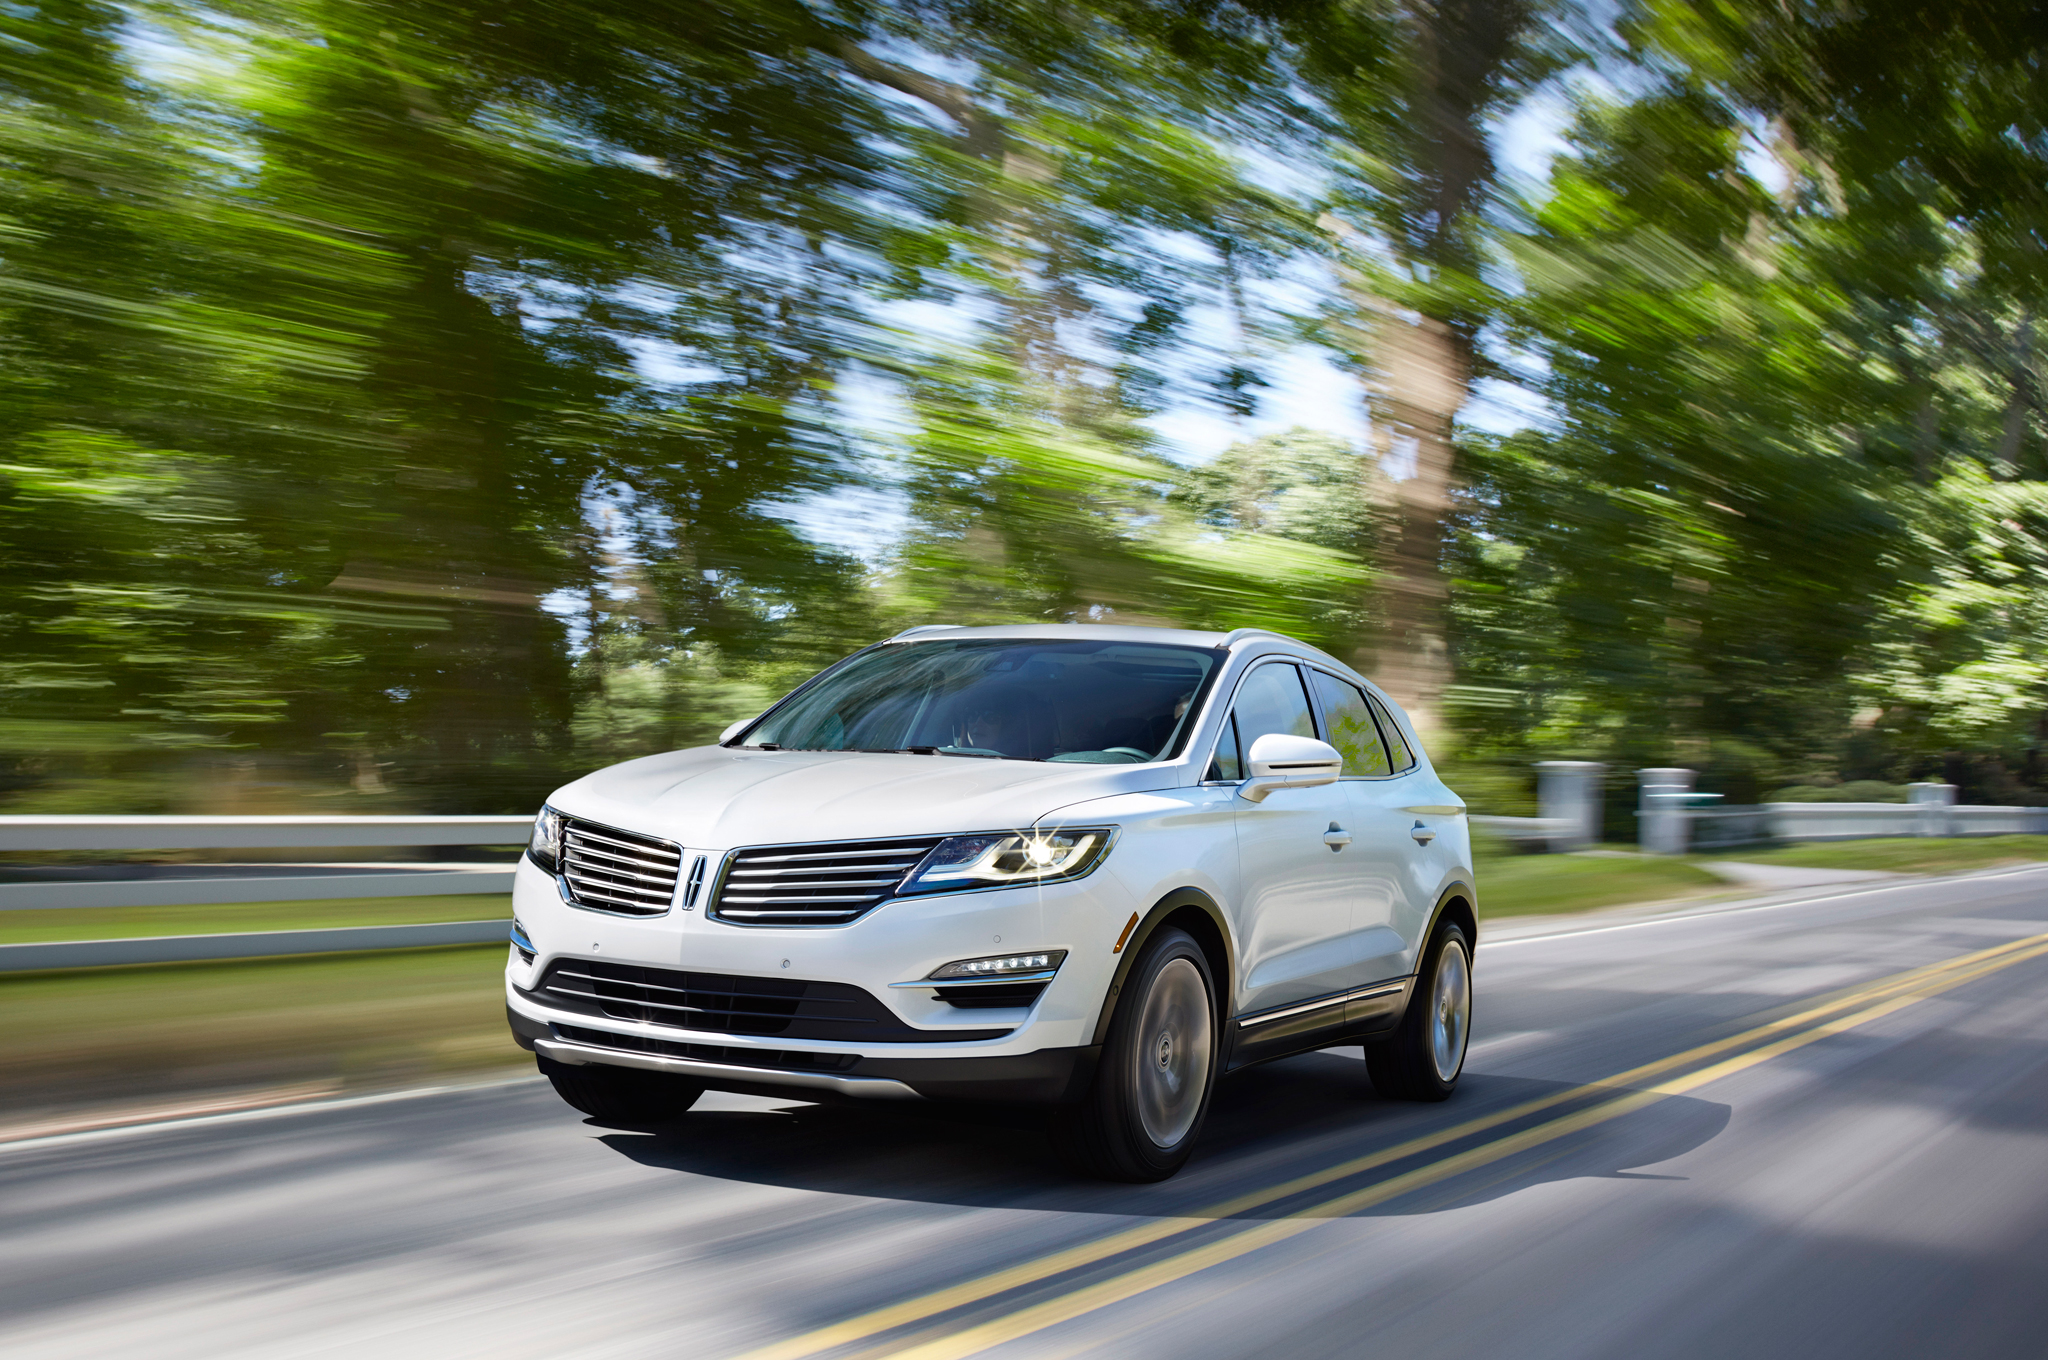 2015 Lincoln MKC Performance